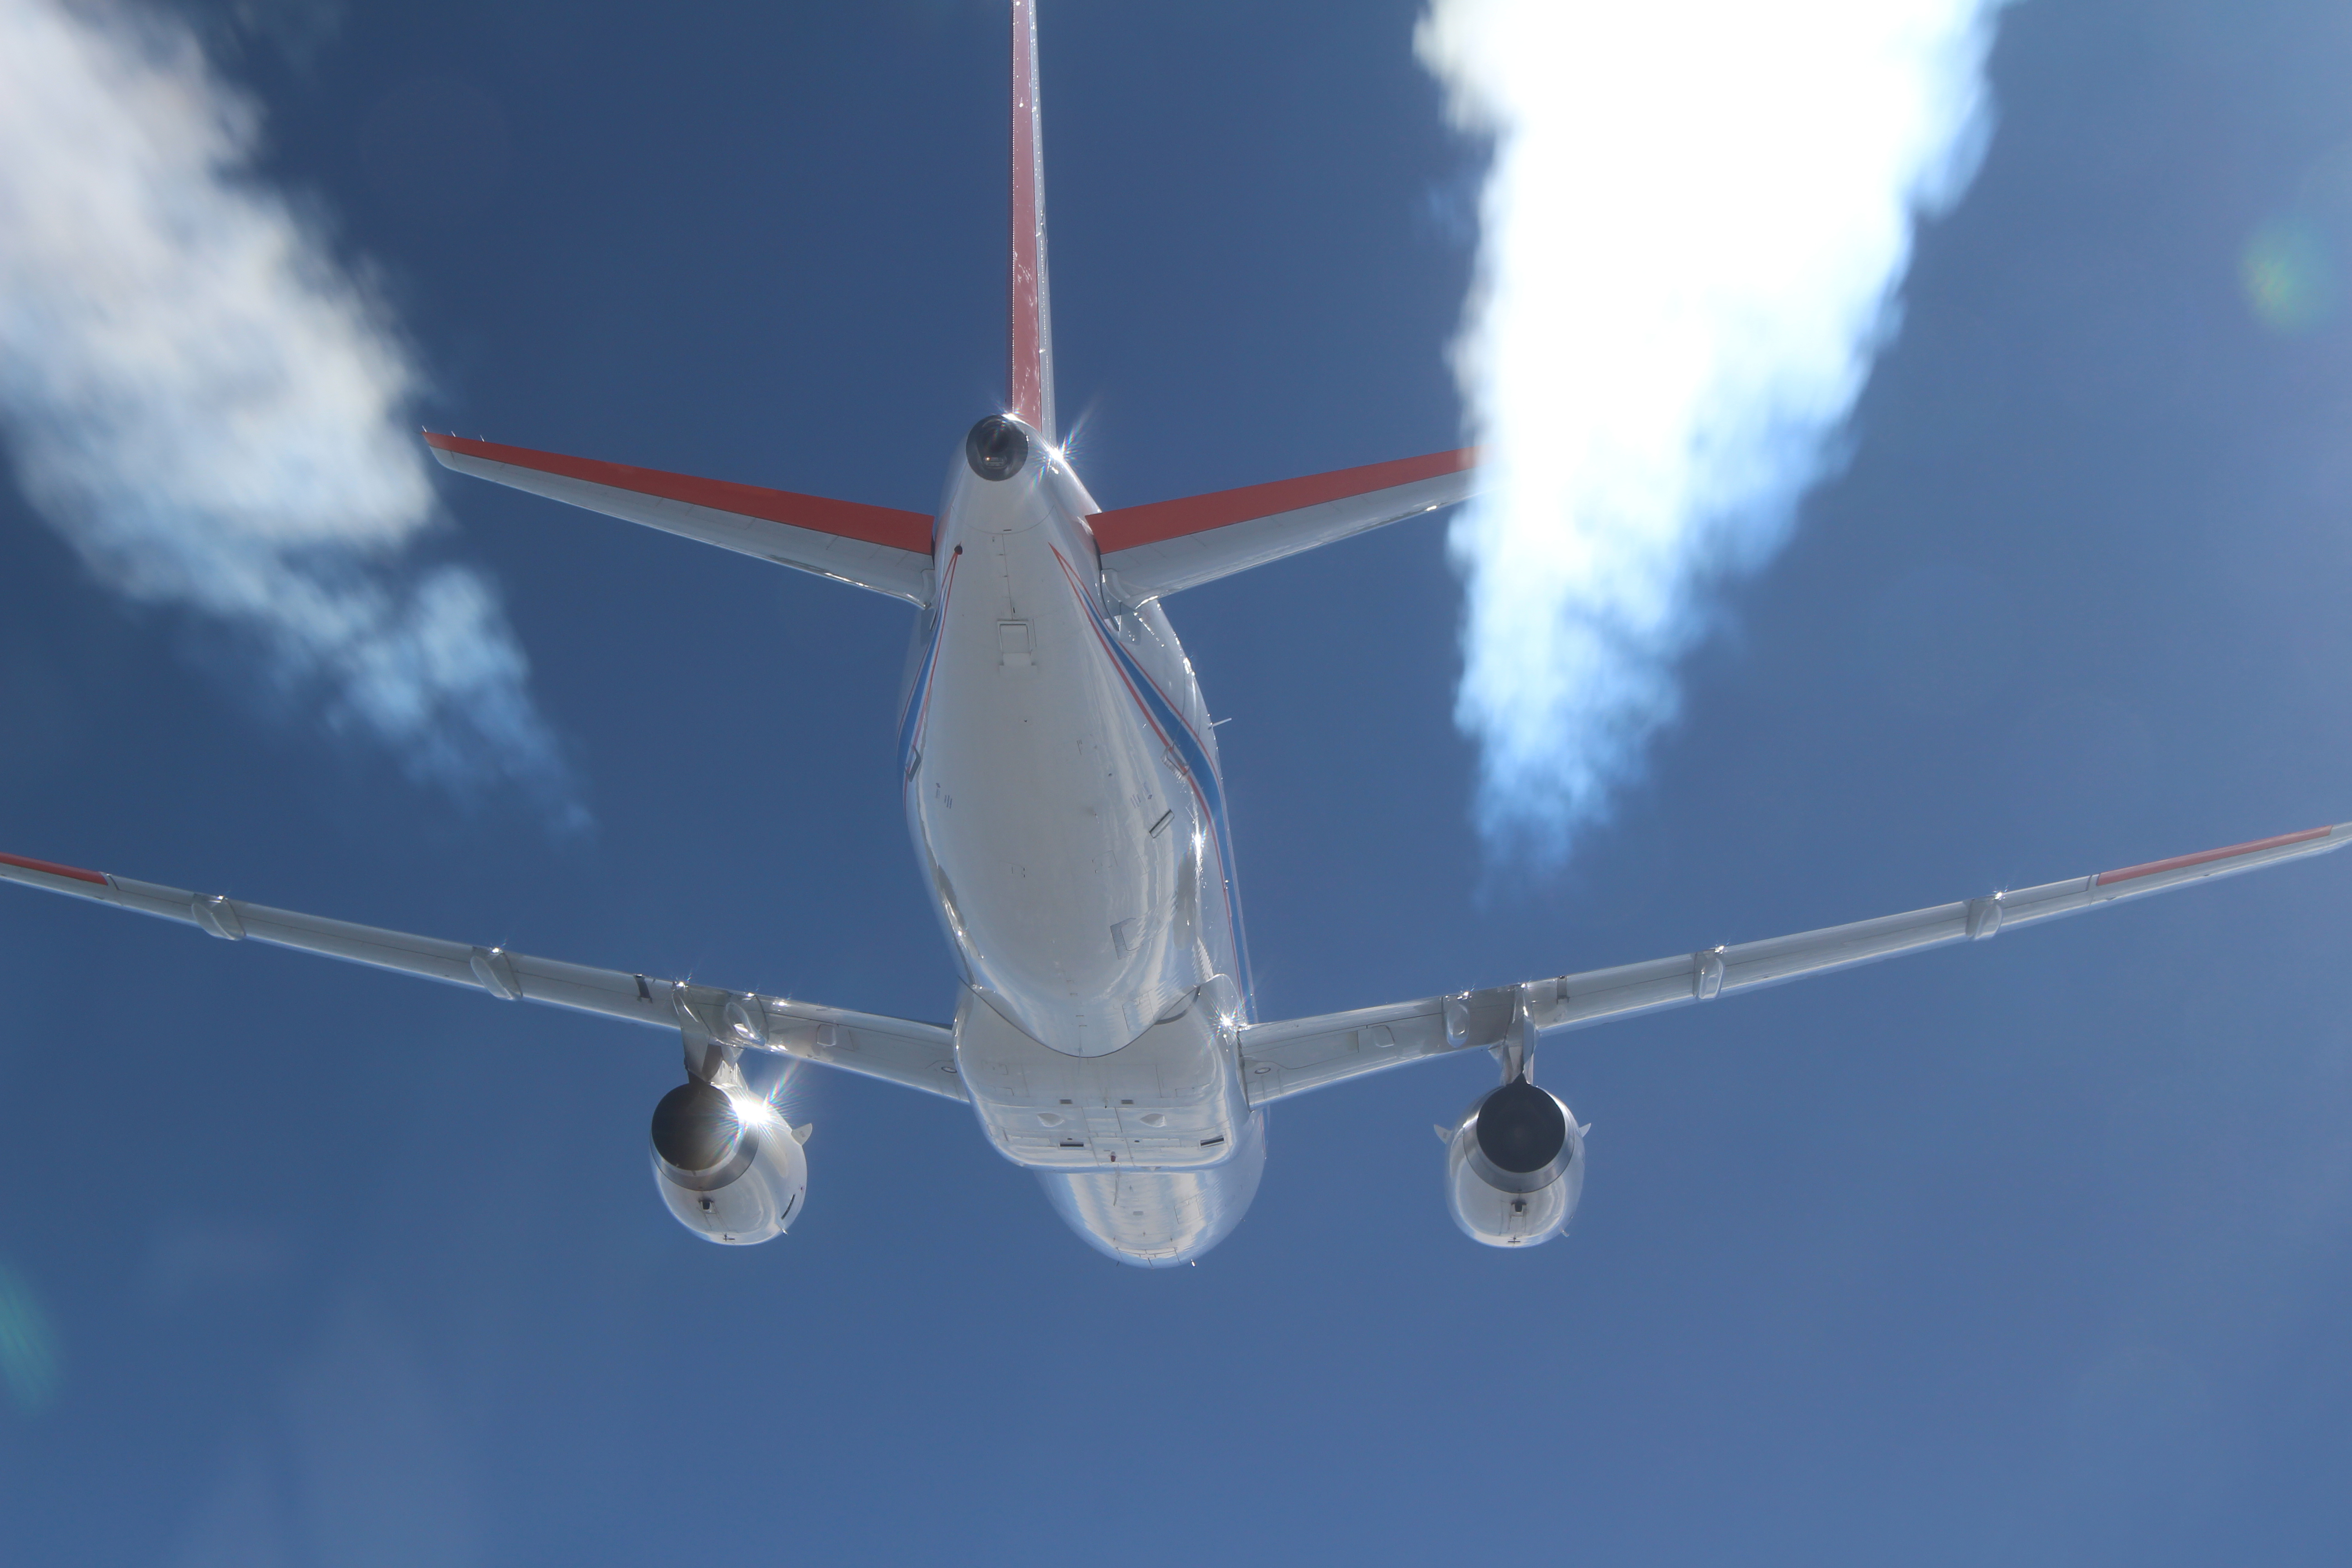 NASA-DLR Study Finds Sustainable Aviation Fuel Can Reduce Contrails - NASA